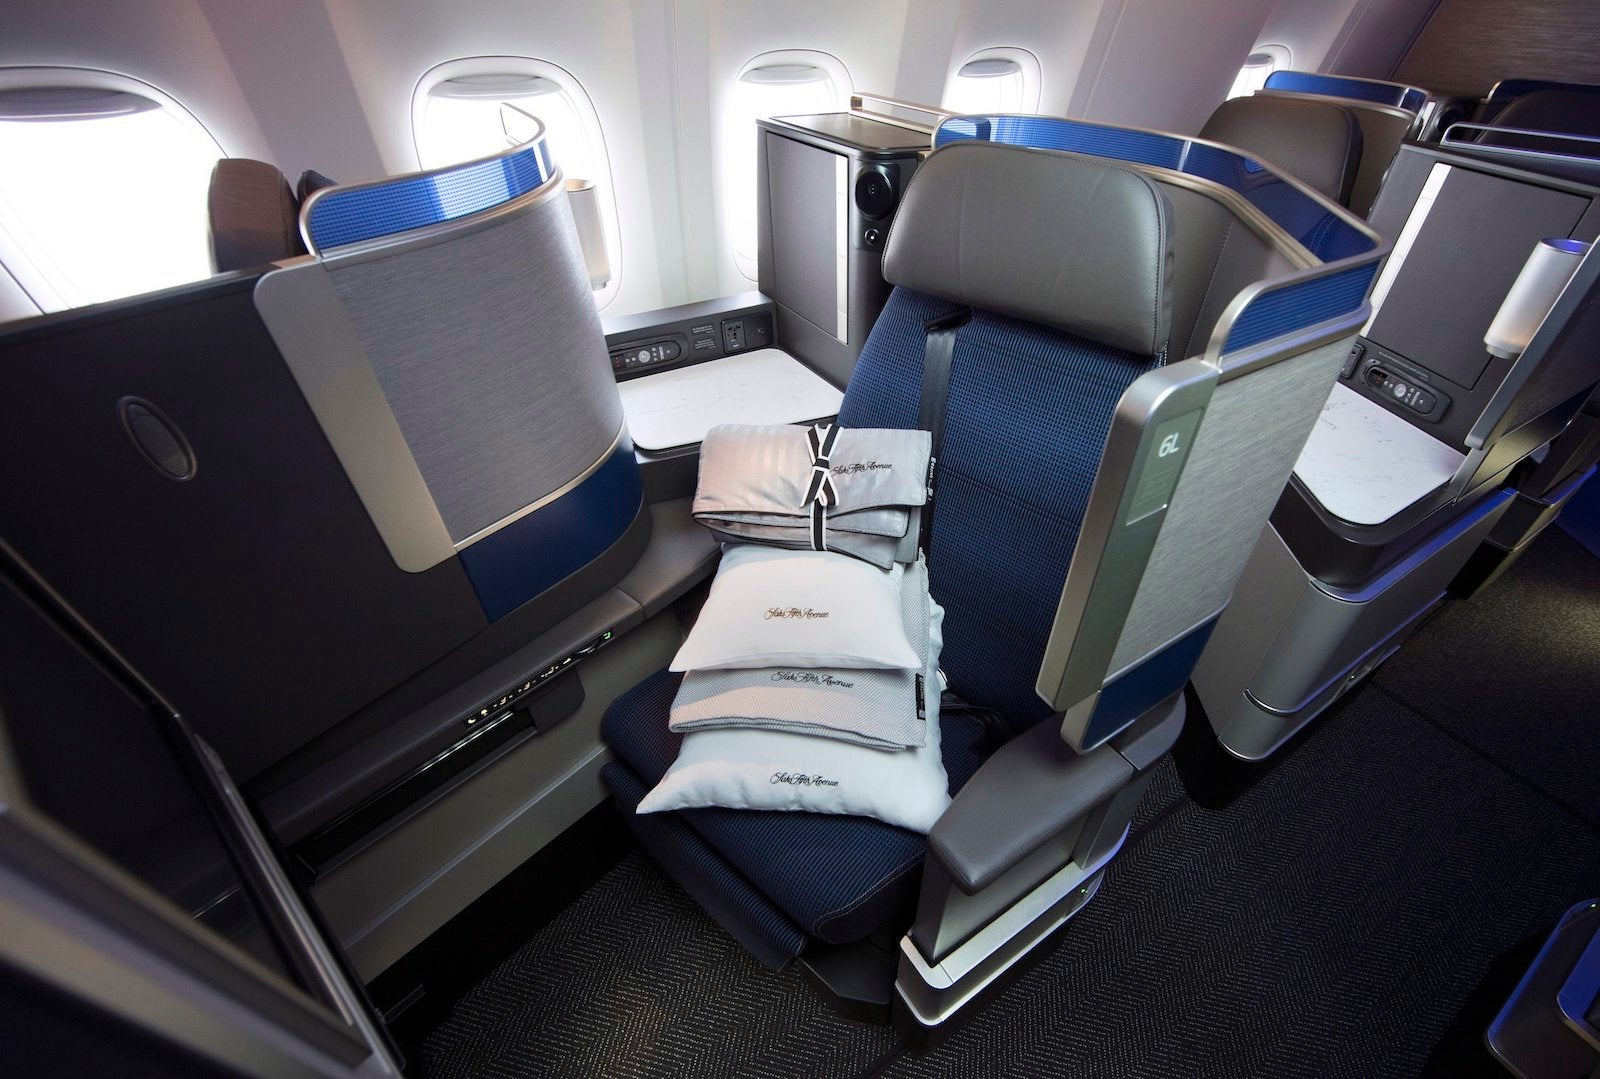 United Business card adds $100 United credit, anniversary bonus and more + 100,000-mile Bonus